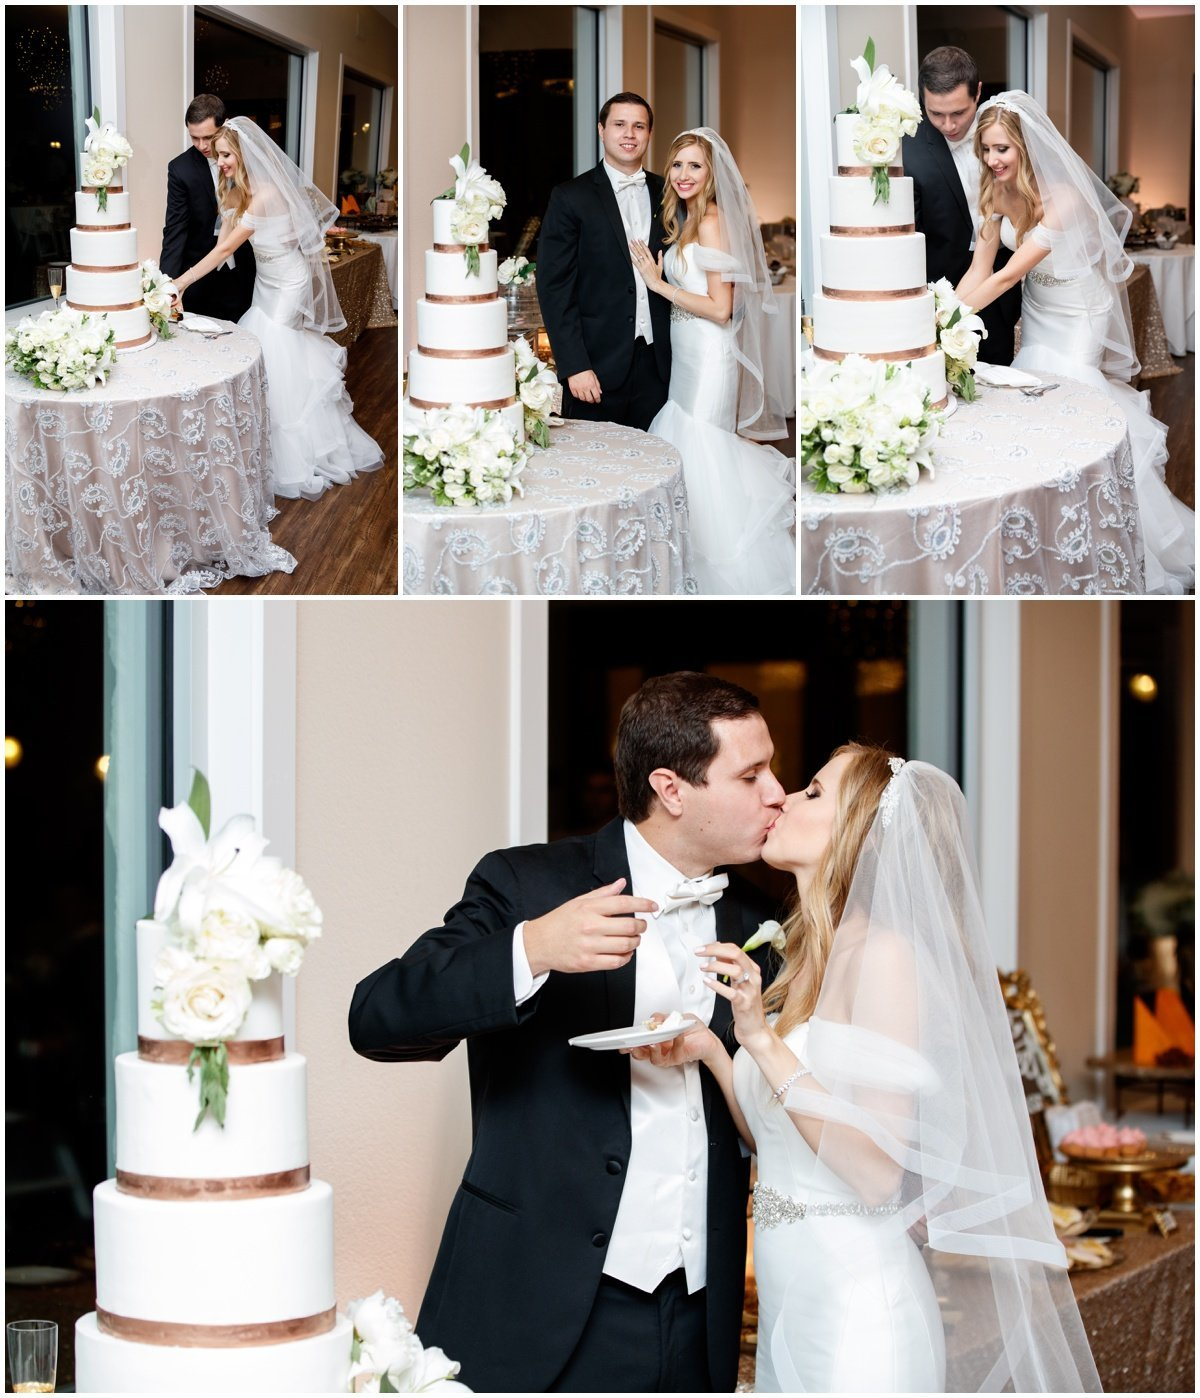 austin wedding photographer vintage villas cake kiss4209 Eck Ln, Austin, TX 78734